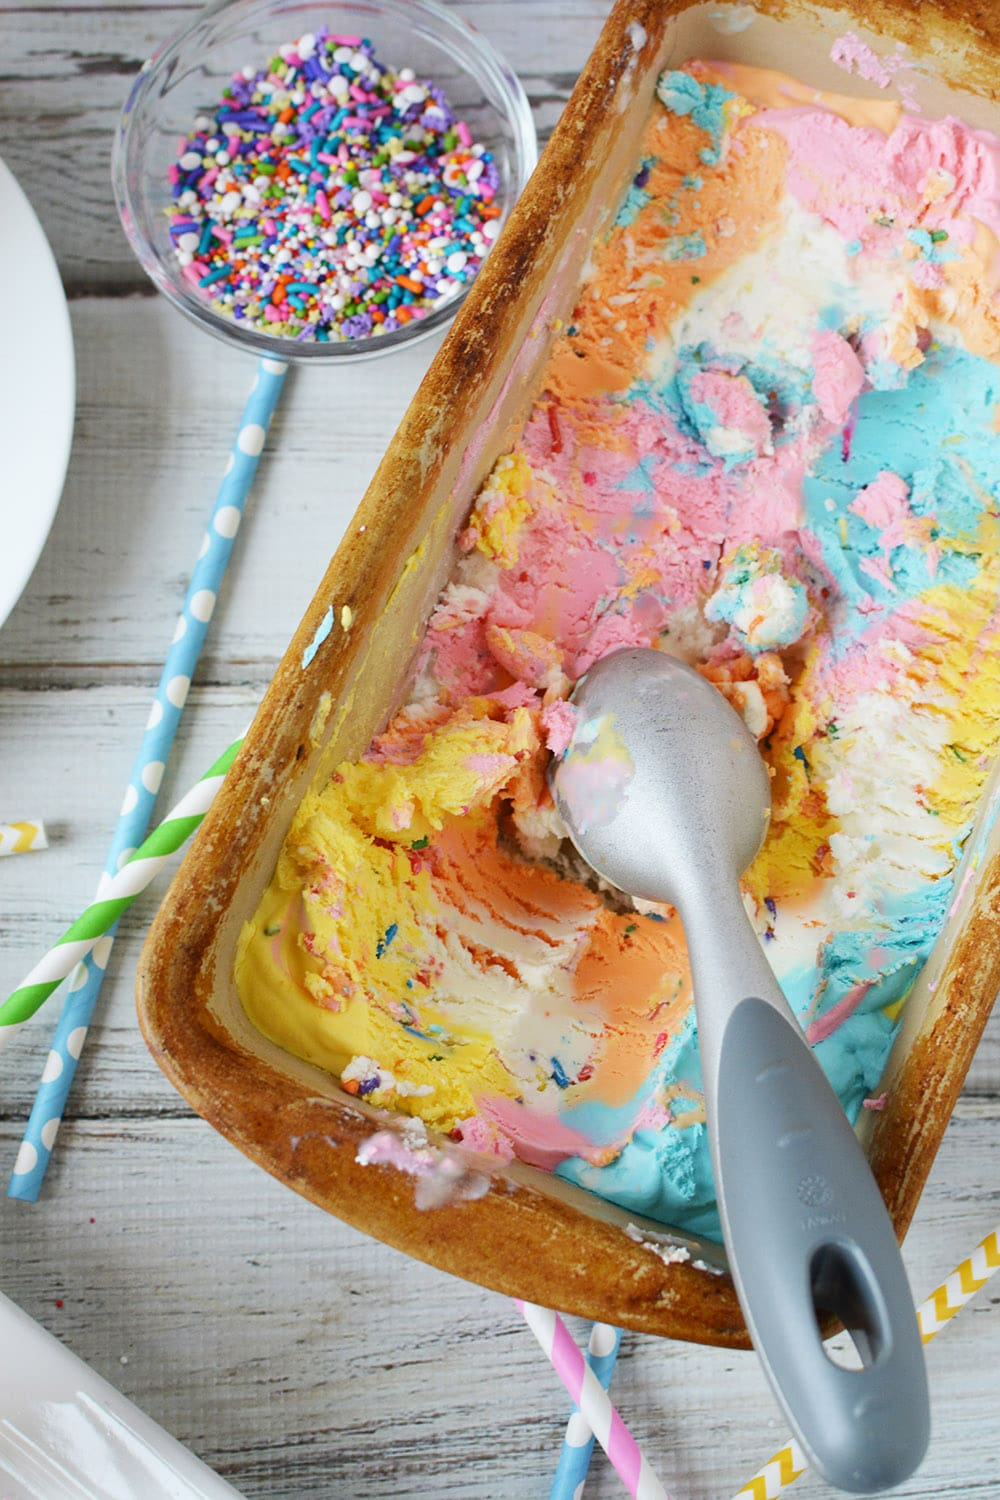 Pan of unicorn ice cream with scoops taken out